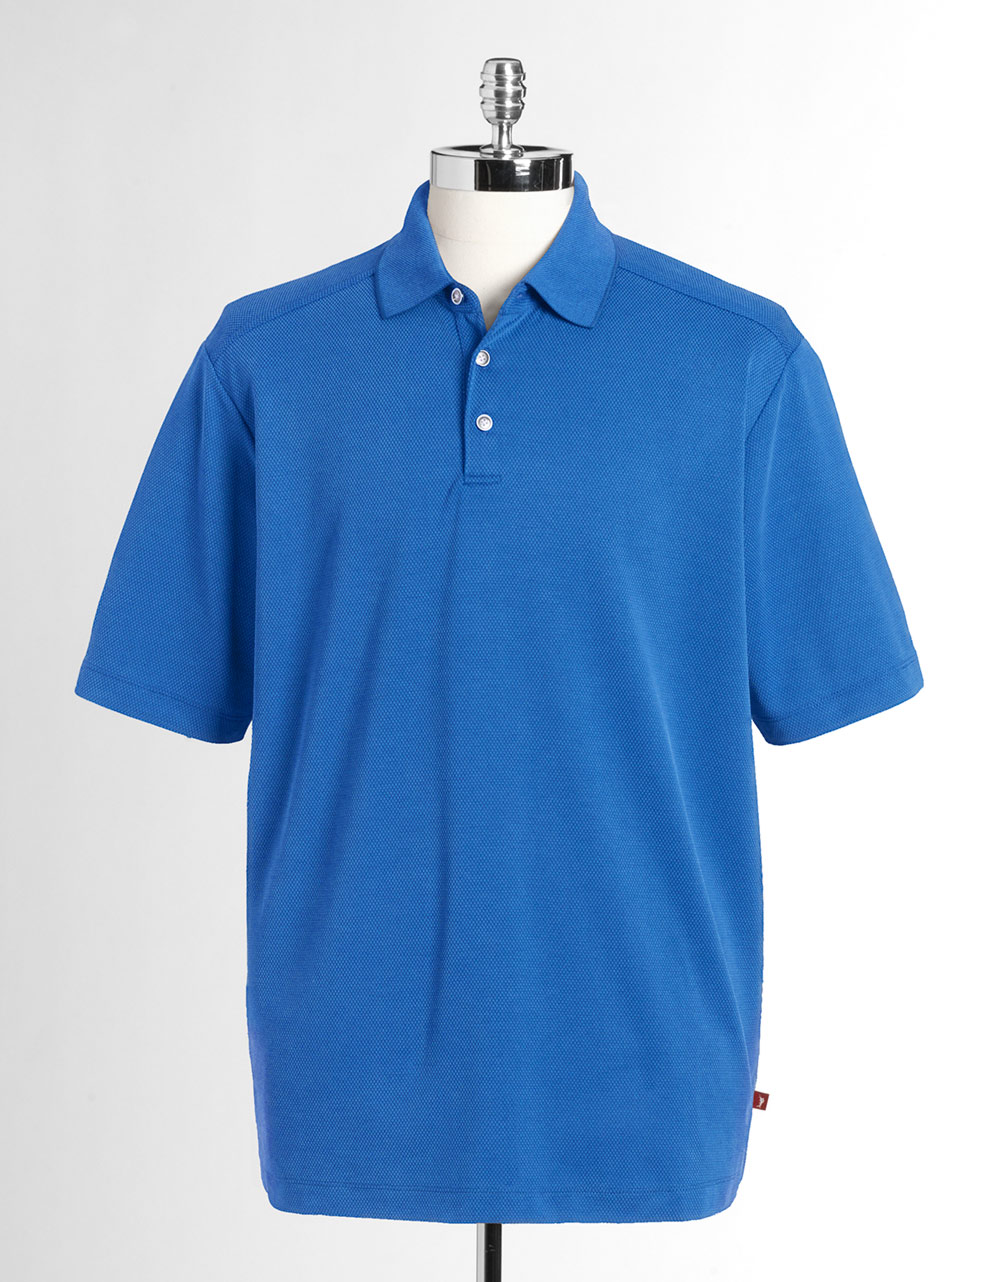 Tommy Bahama Short Sleeve Polo Shirt In Blue For Men Jet